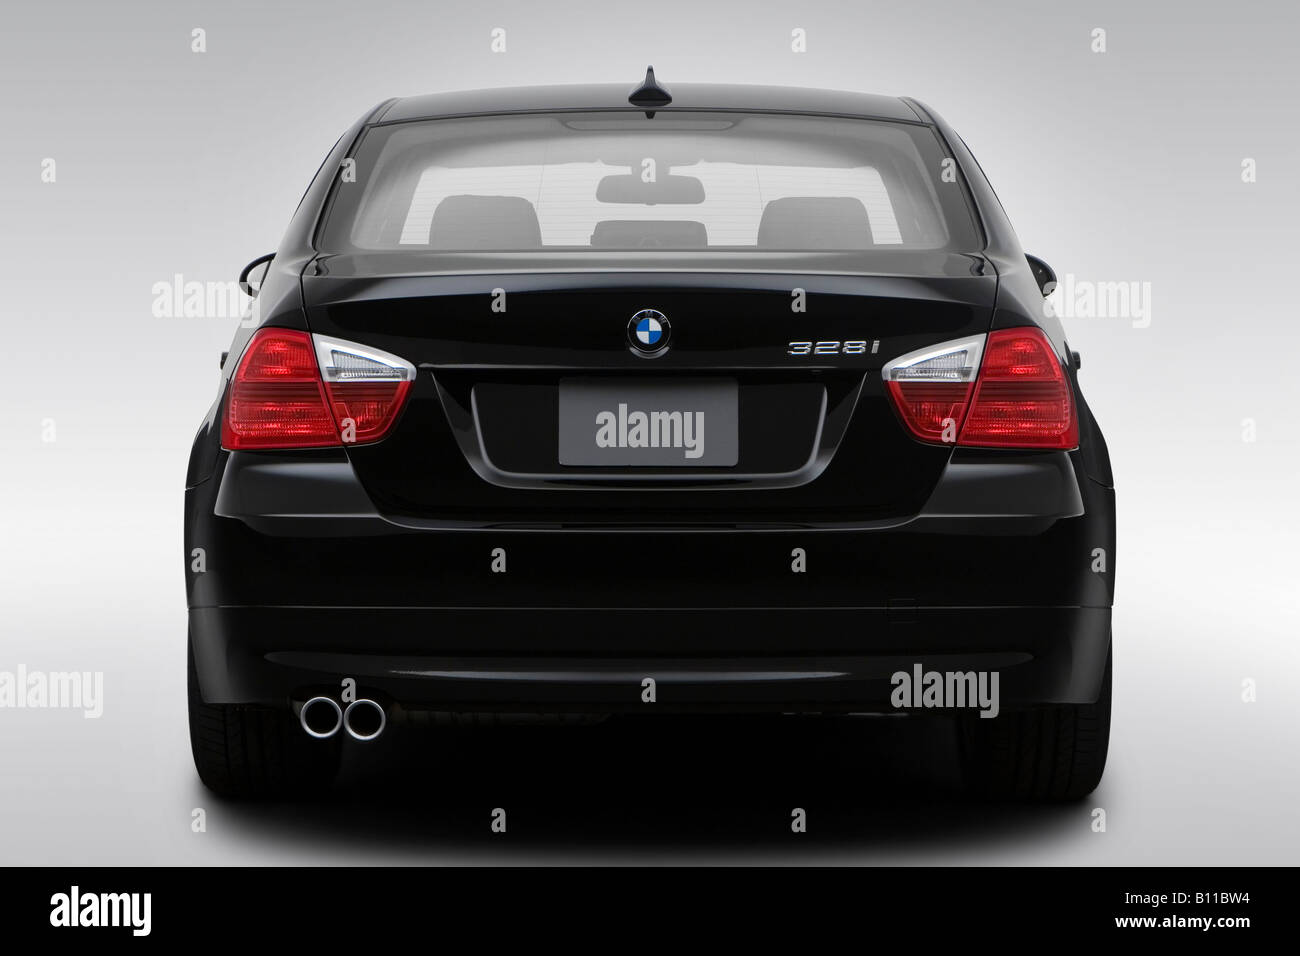 2008 bmw 328i black images galleries with a bite. Black Bedroom Furniture Sets. Home Design Ideas